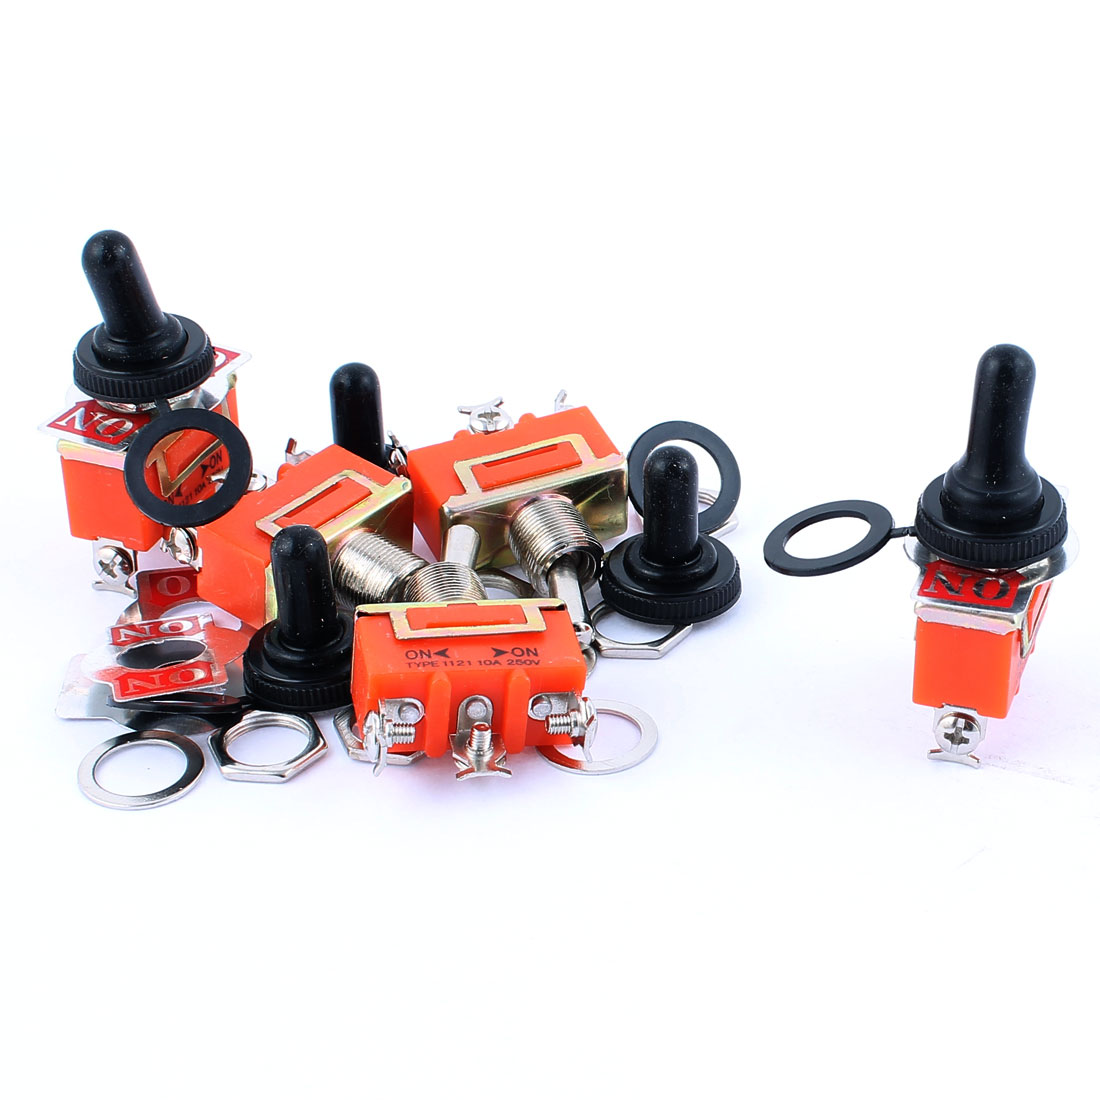 5Pcs AC 250V 10A SPDT ON-ON 2 Positions Latching Toggle Switch Orange w Cap